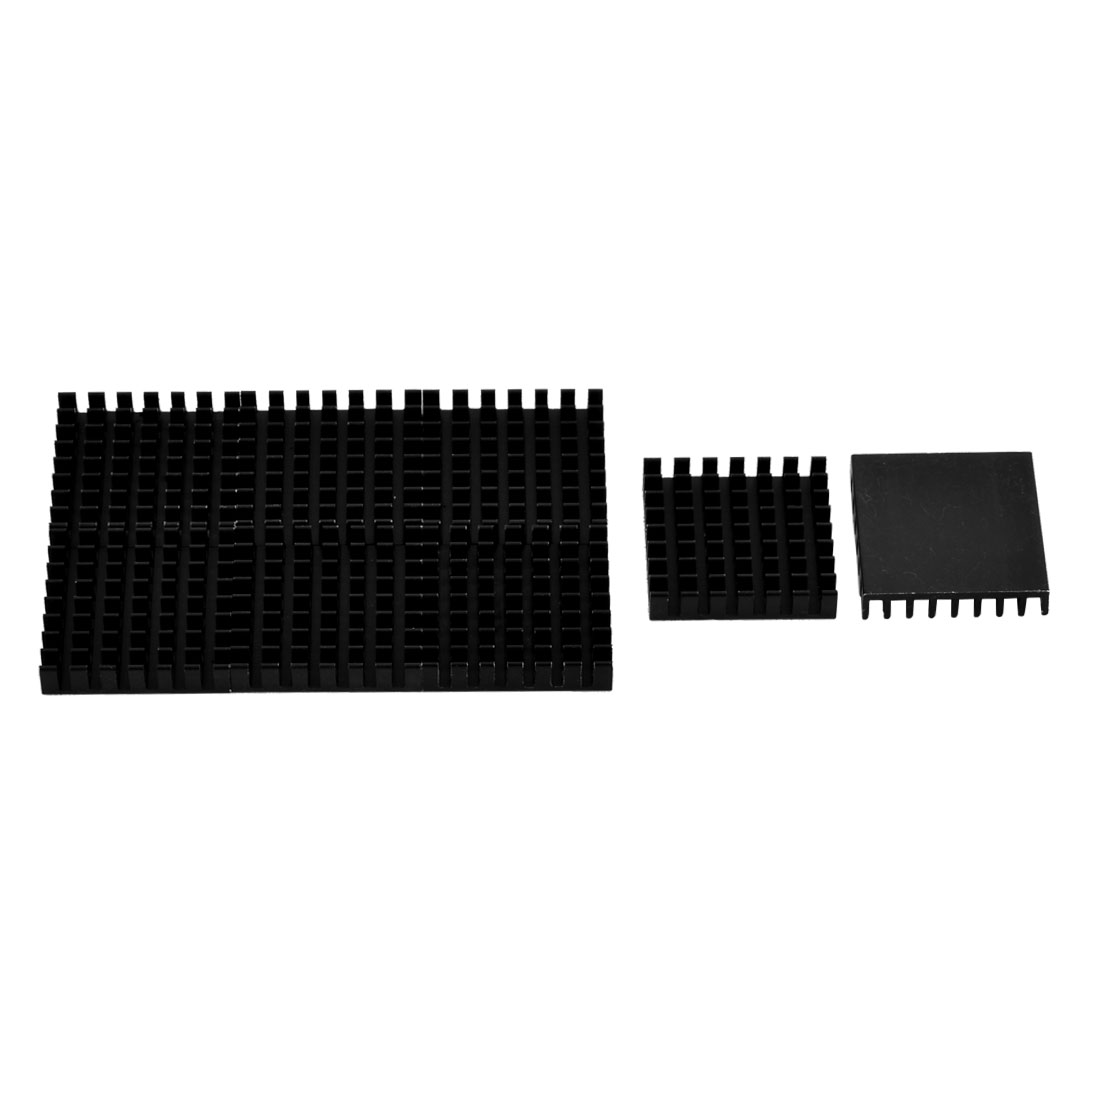 Aluminium Heat Diffuse Cooling Fin Heatsink Black 28mm x 28mm x 6mm 8 Pcs